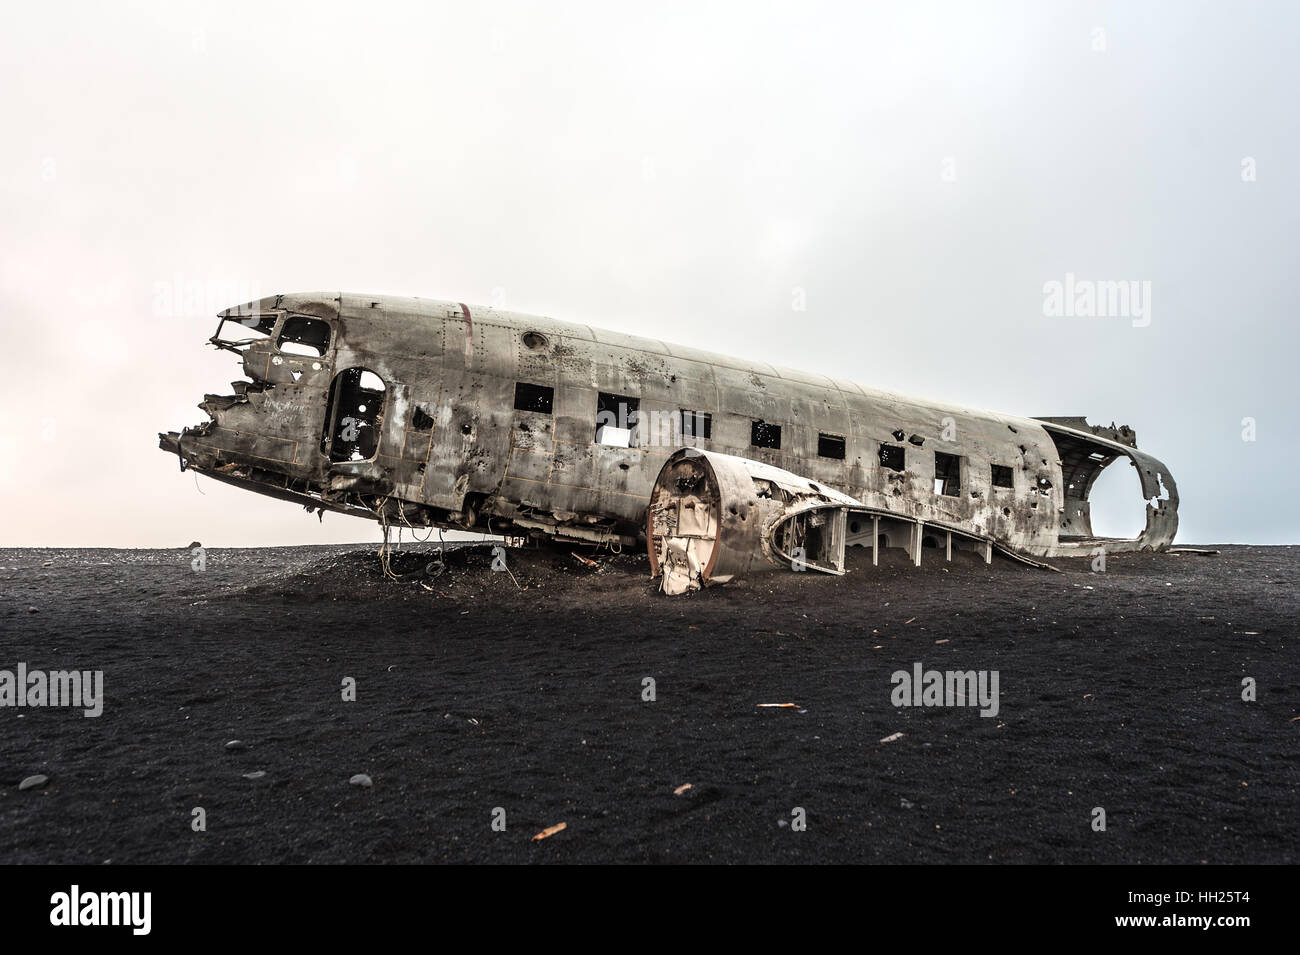 Wreck of a US military plane crashed in Iceland Stock Photo